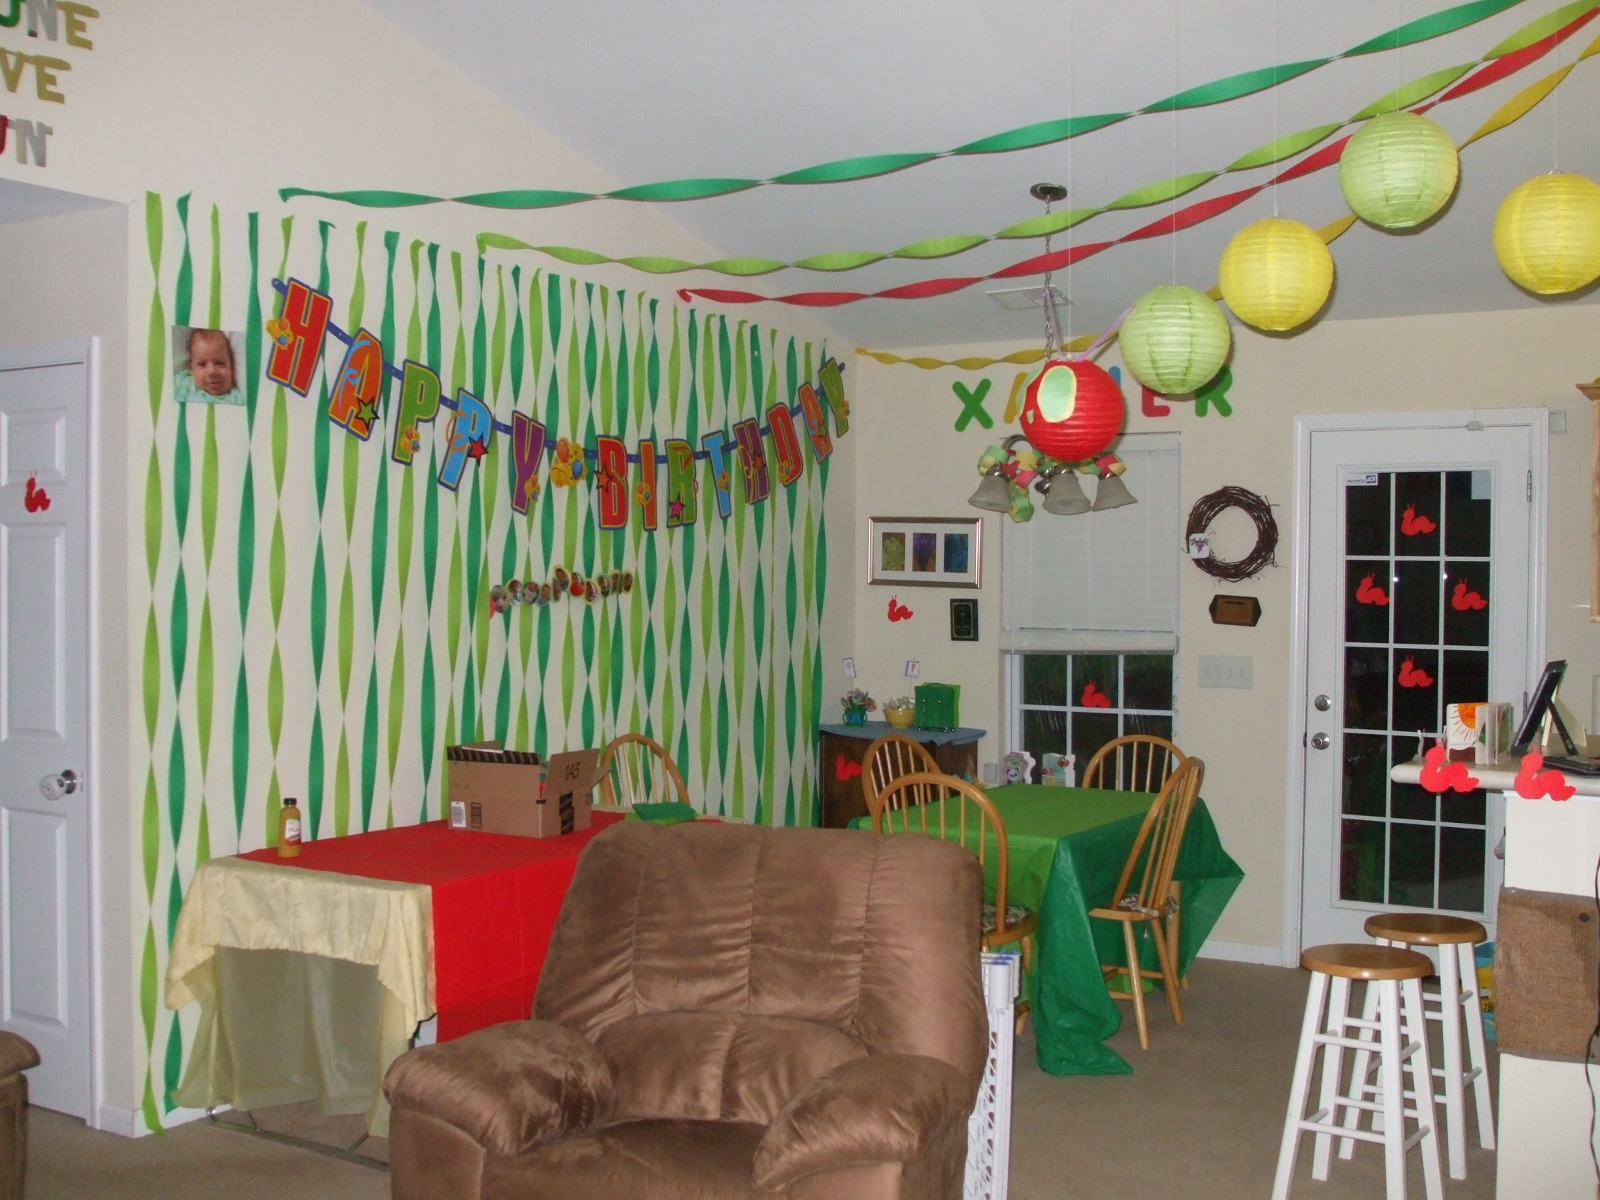 Next generation stay at home mom xavier 39 s first birthday for Home decorations for birthday party